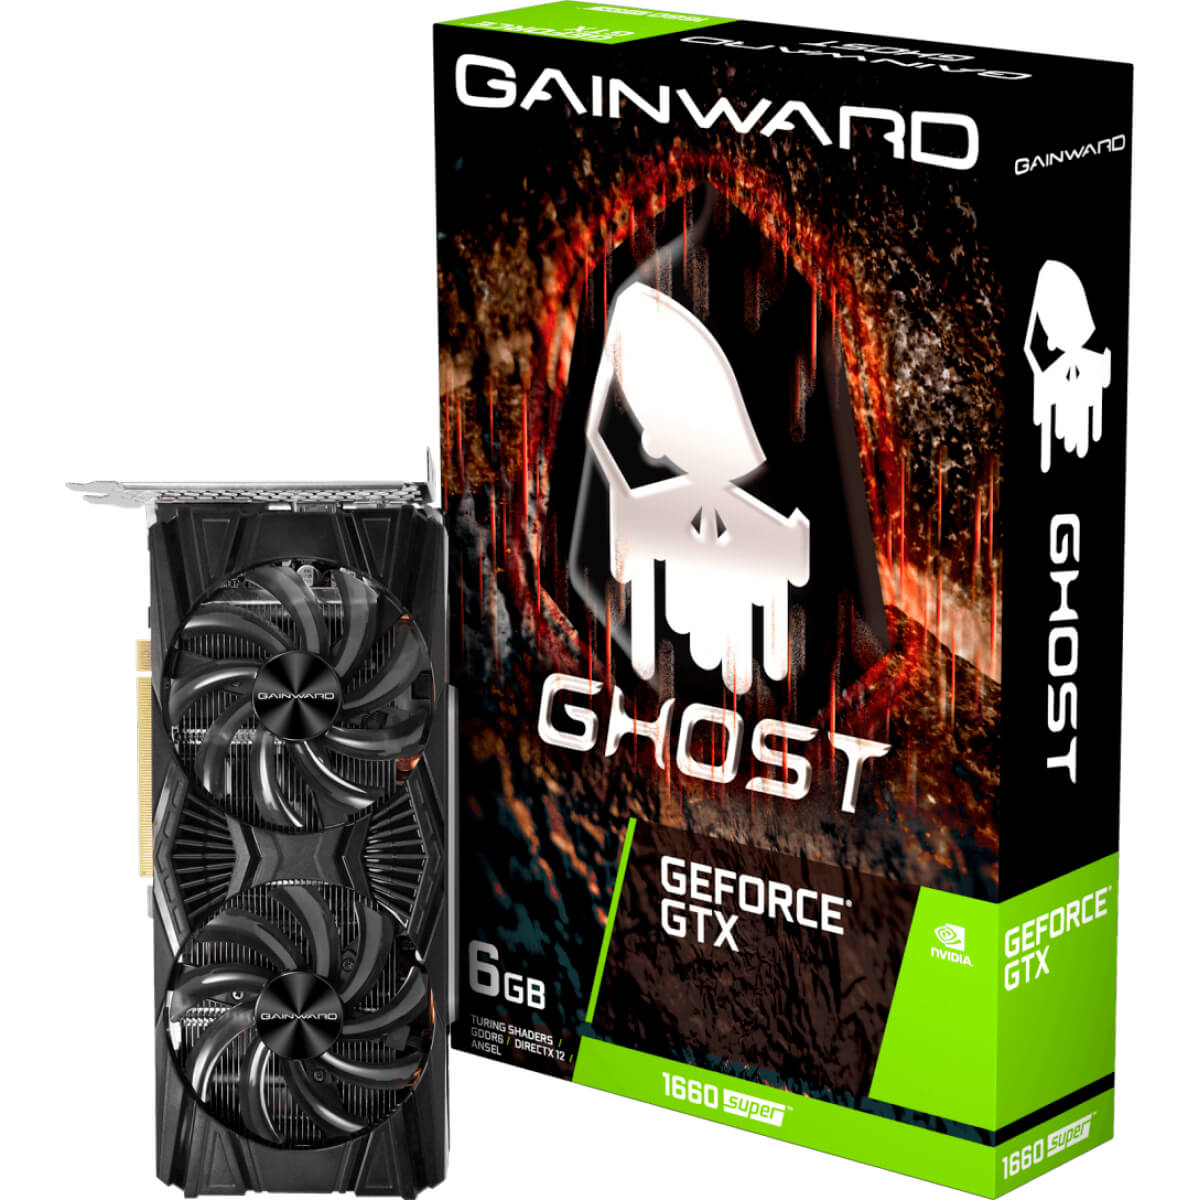 Placa de Vídeo NVIDIA GeForce GTX 1660 Ghost 6GB GDDR5 PCI-E 3.0  -  Games Lord